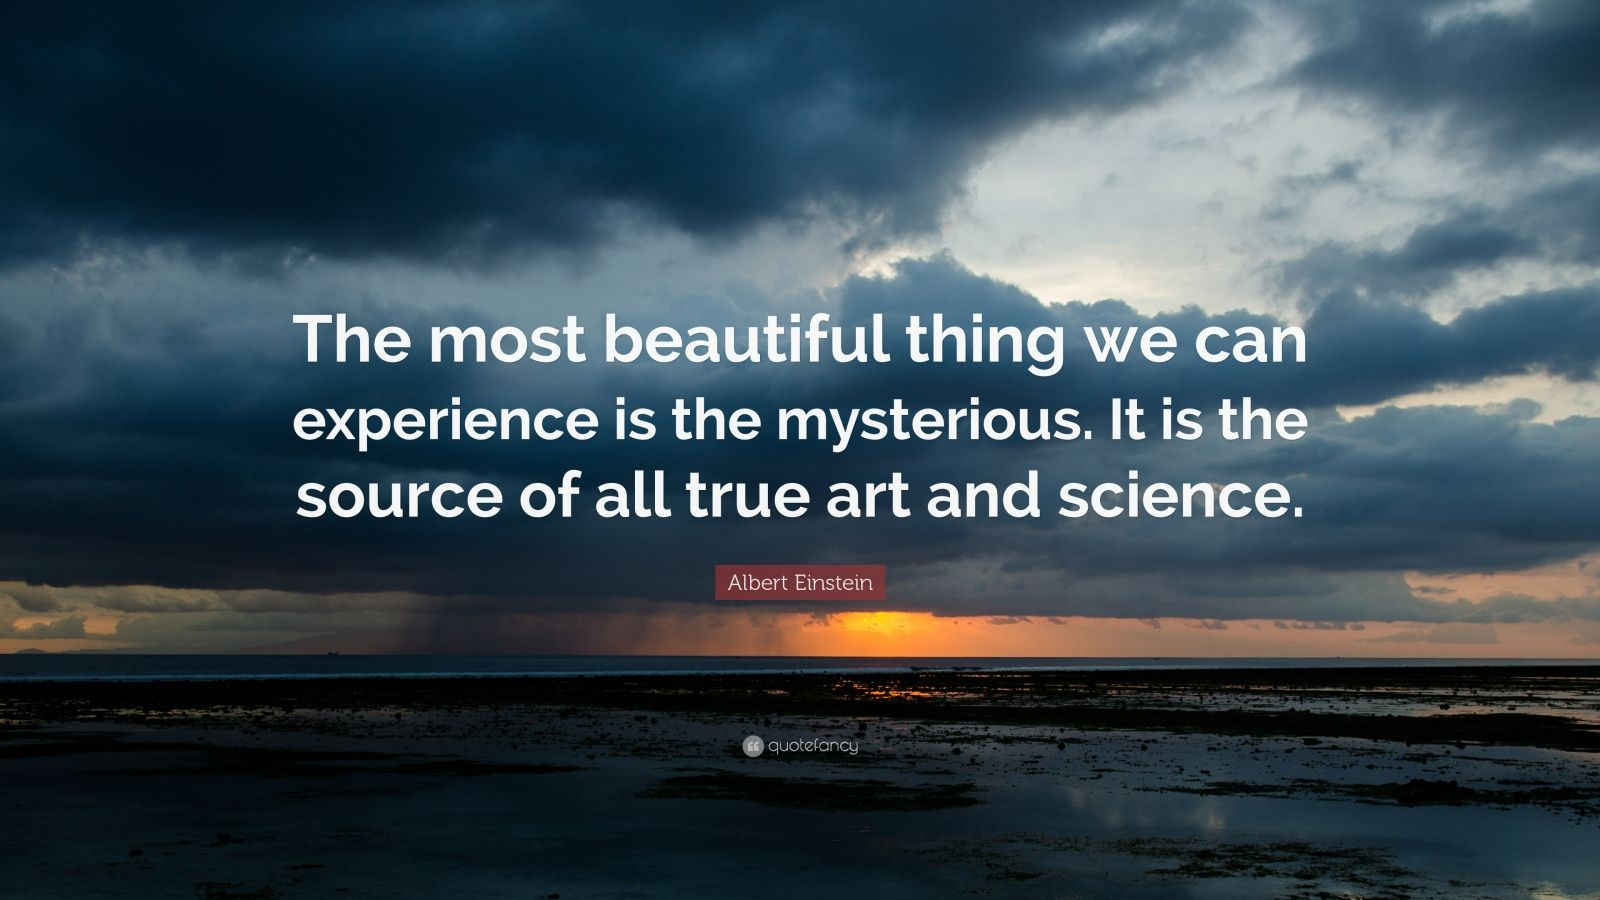 Love Quote Images Wallpaper Albert Einstein Quote The Most Beautiful Thing We Can